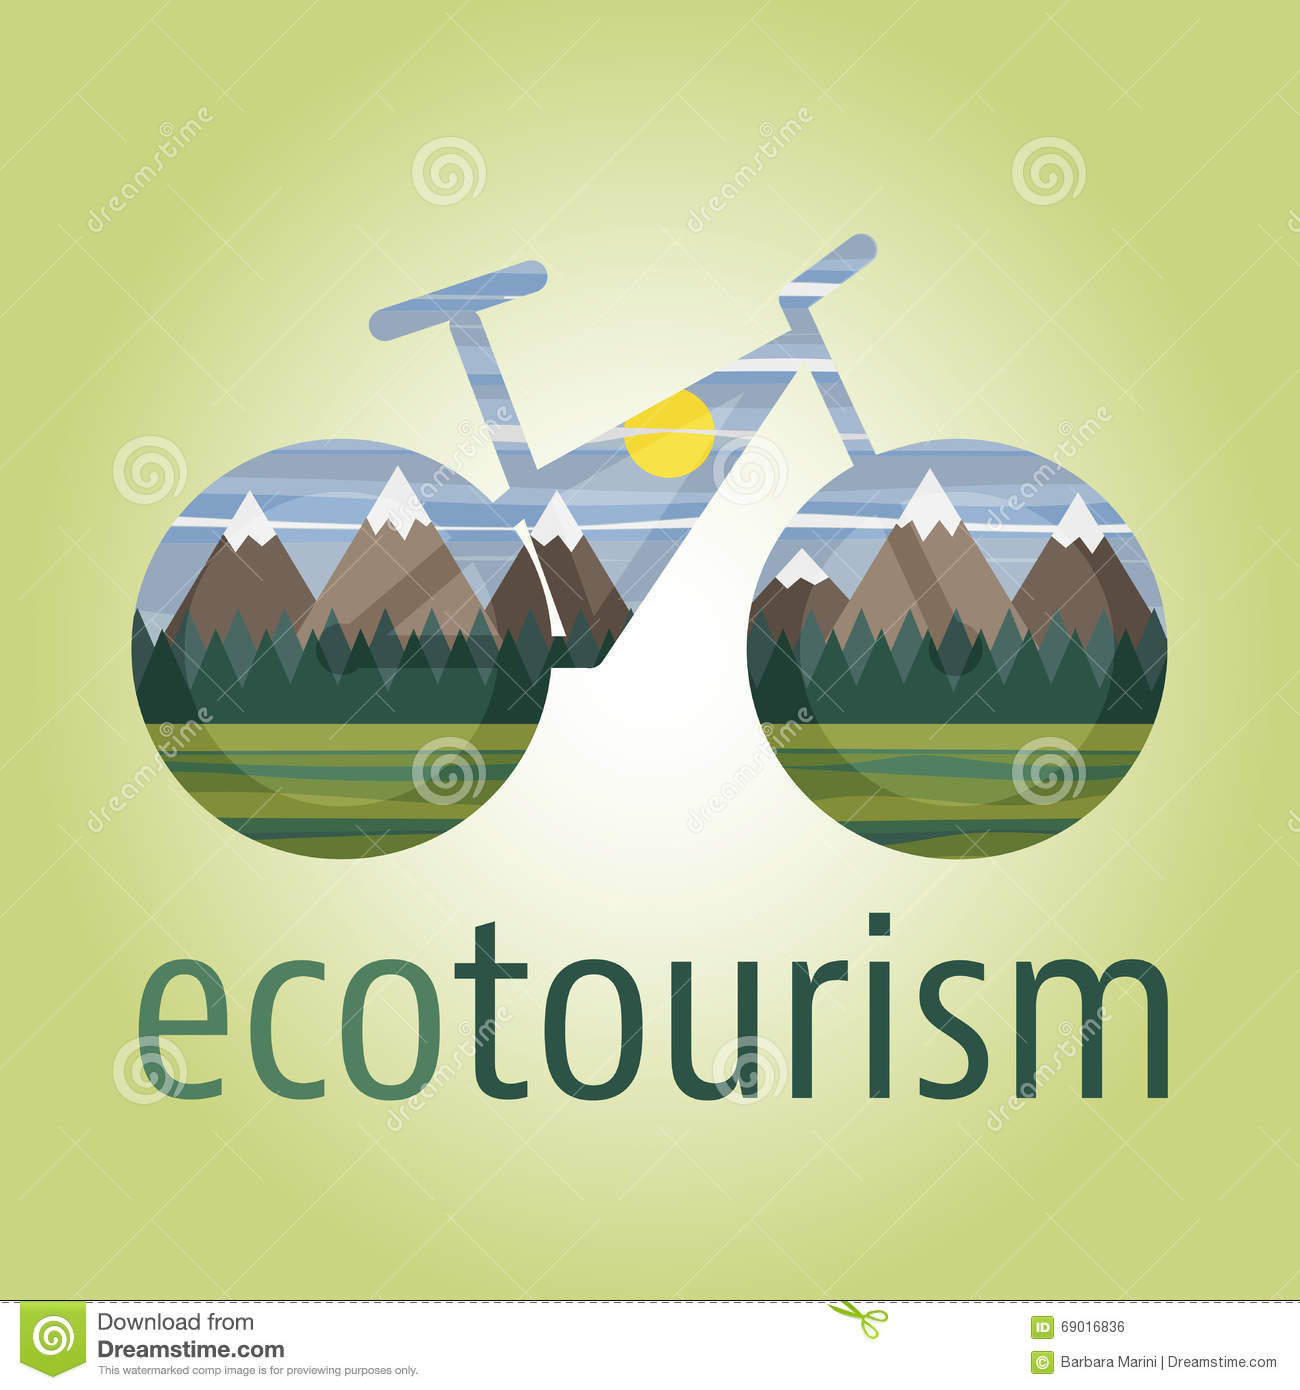 Eco Tourism clipart #6, Download drawings